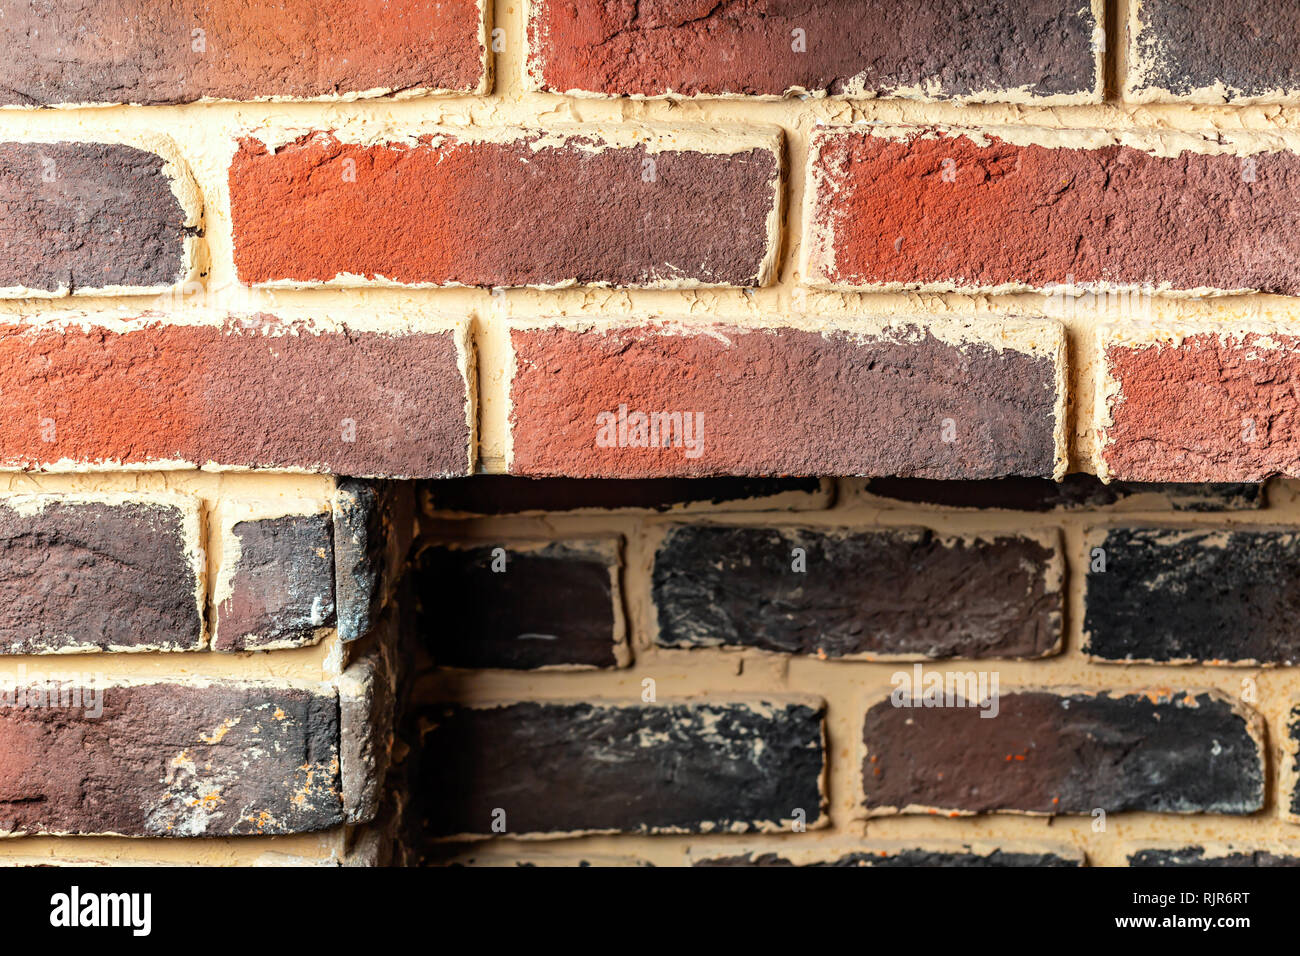 Fragment of a brick wall fireplace with a rectangular niche - Stock Image